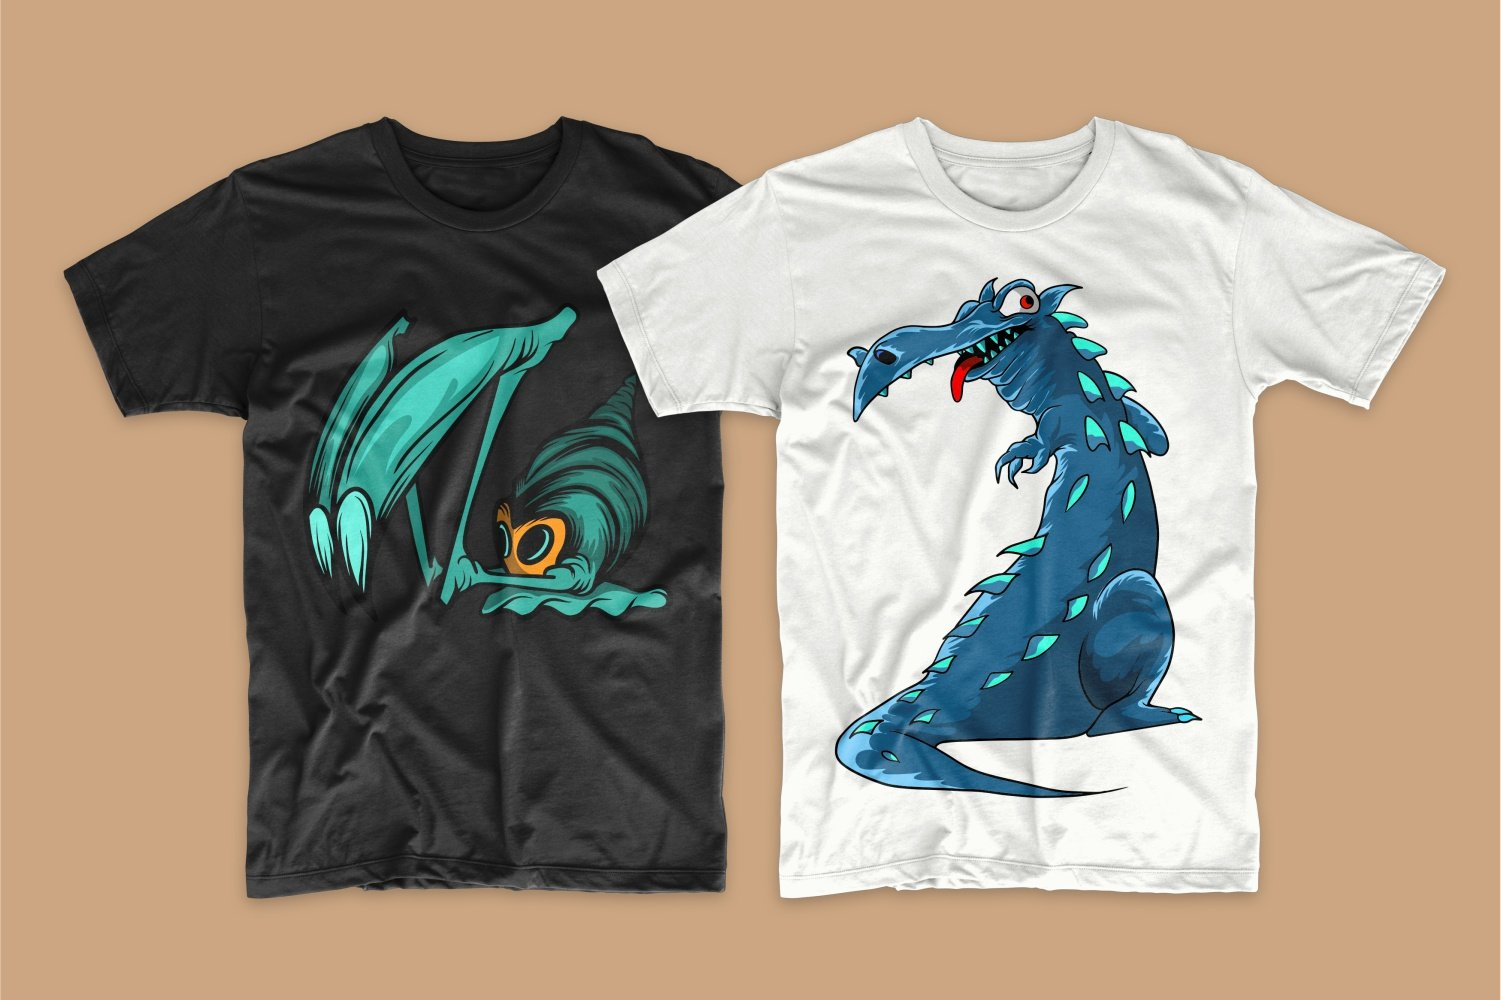 Black T-shirt with a green long-whisker snail and white with a blue dragon.